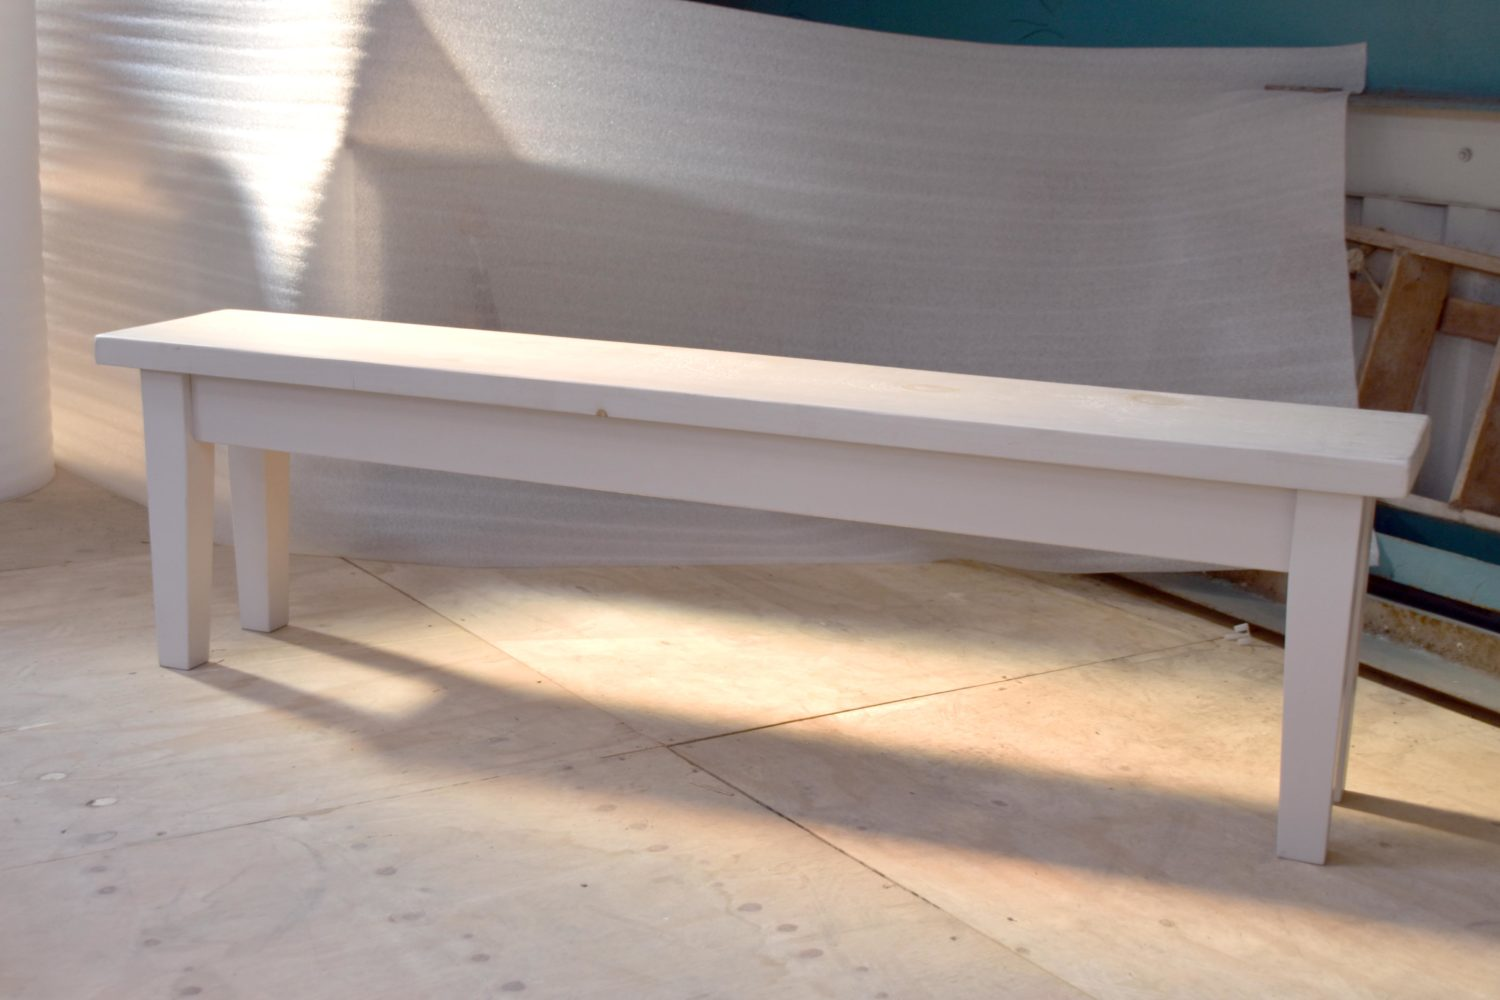 Tapered Leg Bench in the Mudd & Co factory sale 2020. Handcrafted kitchen and home furniture